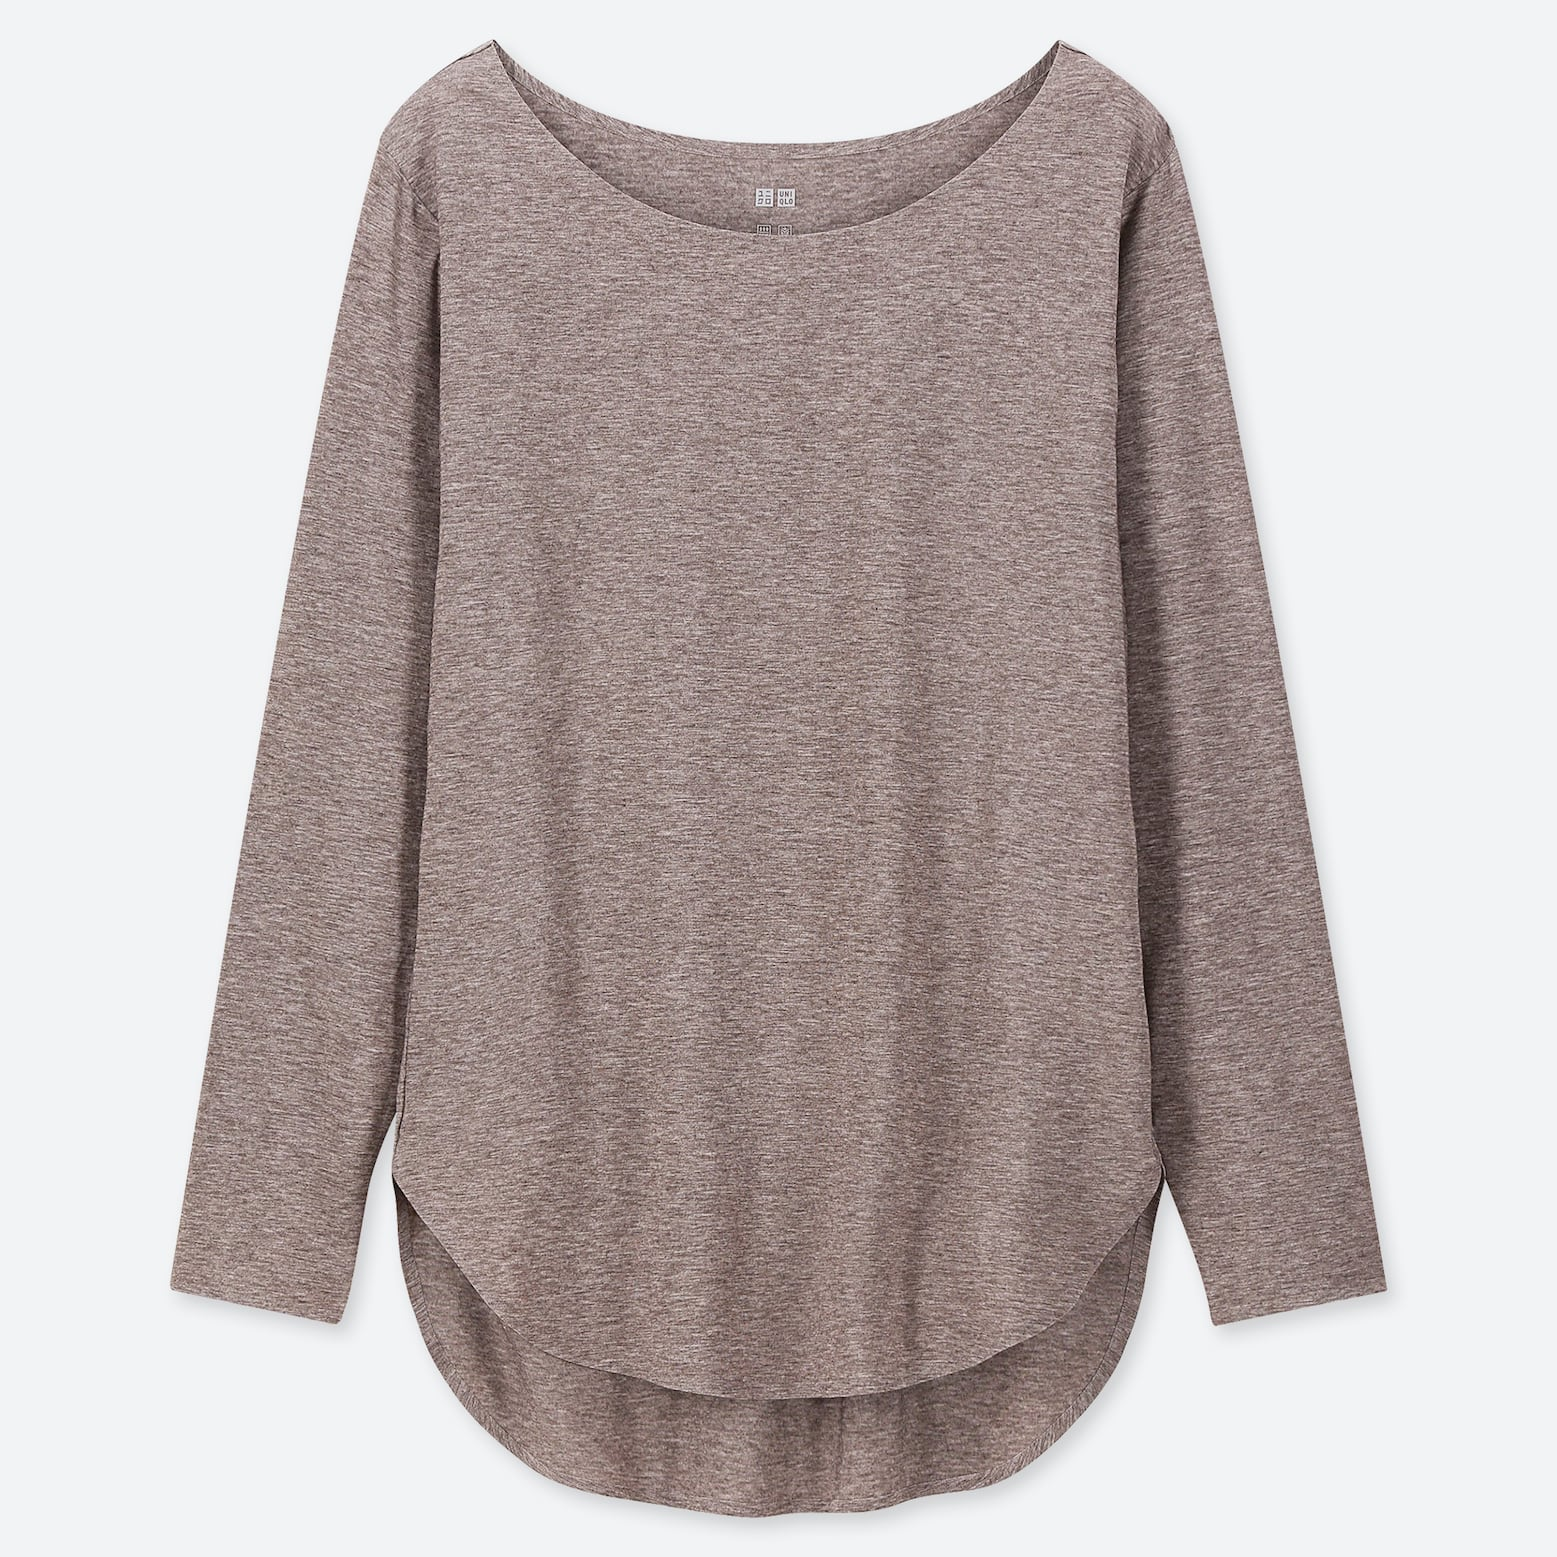 Airism Seamless Long Sleeve T Shirt by Uniqlo